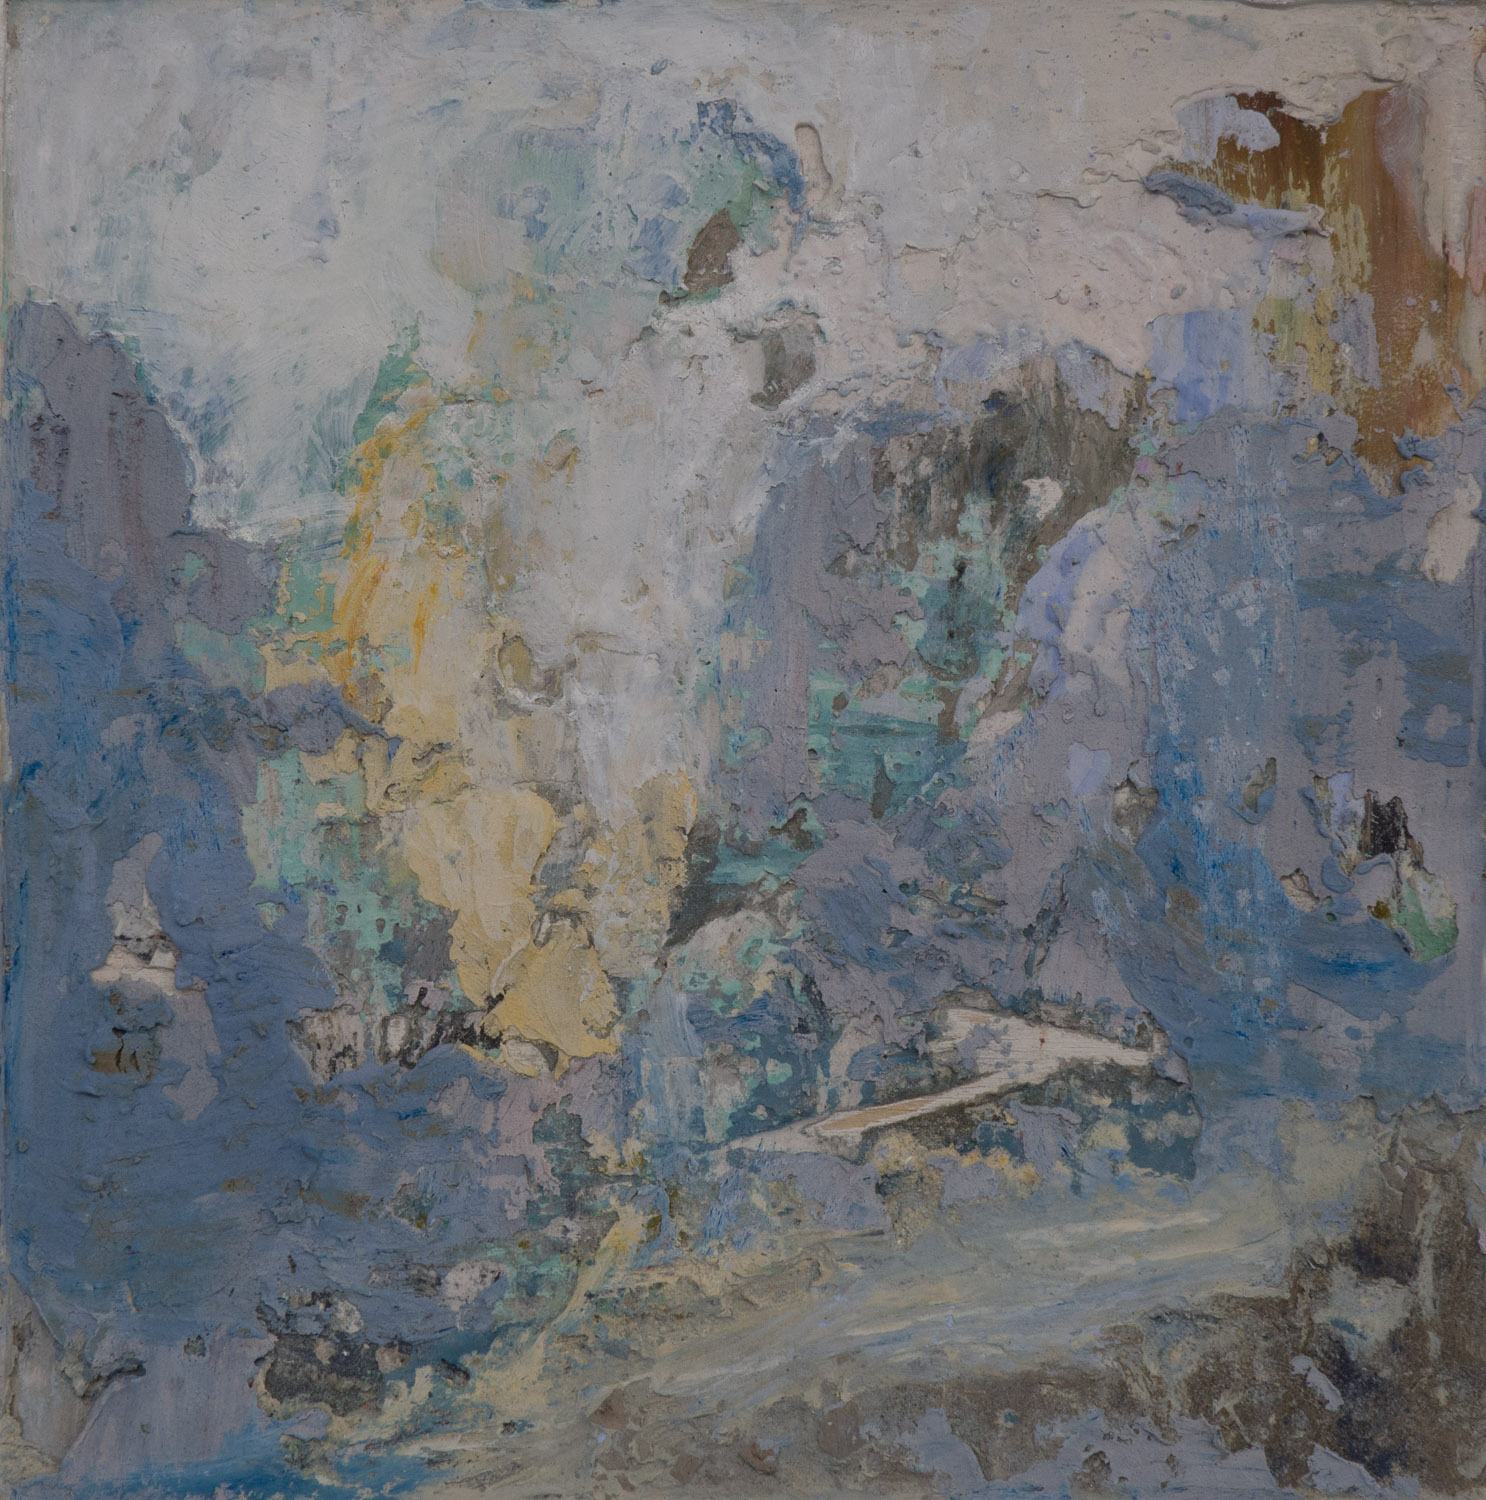 Shelley Vanderbyl - Abstract From Ashes 1 (Full Crop) - 2016 - Fresco on Panel - 8x8.jpg